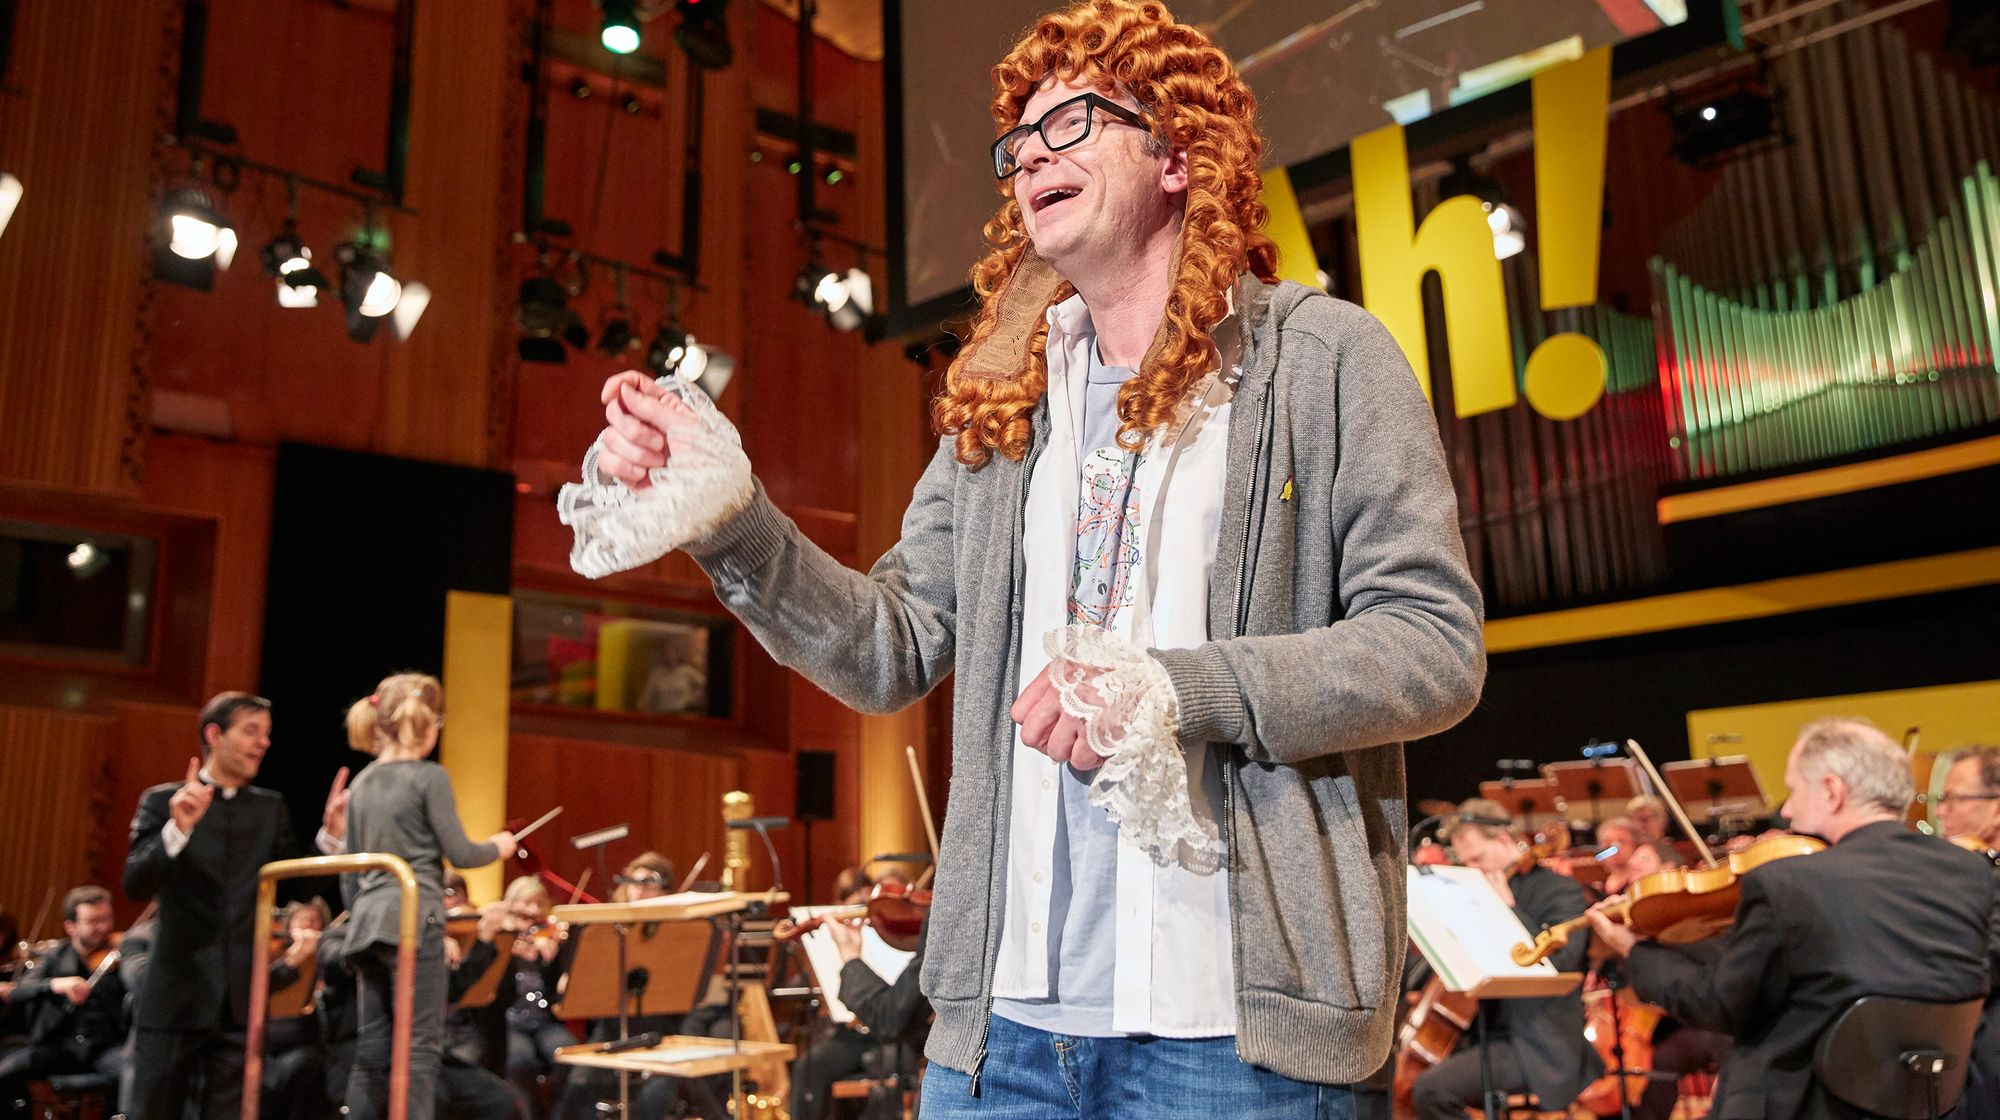 Ralph introducing the music of the classical composer Johann Sebastian Bach. Image: WDR/Claus Langer